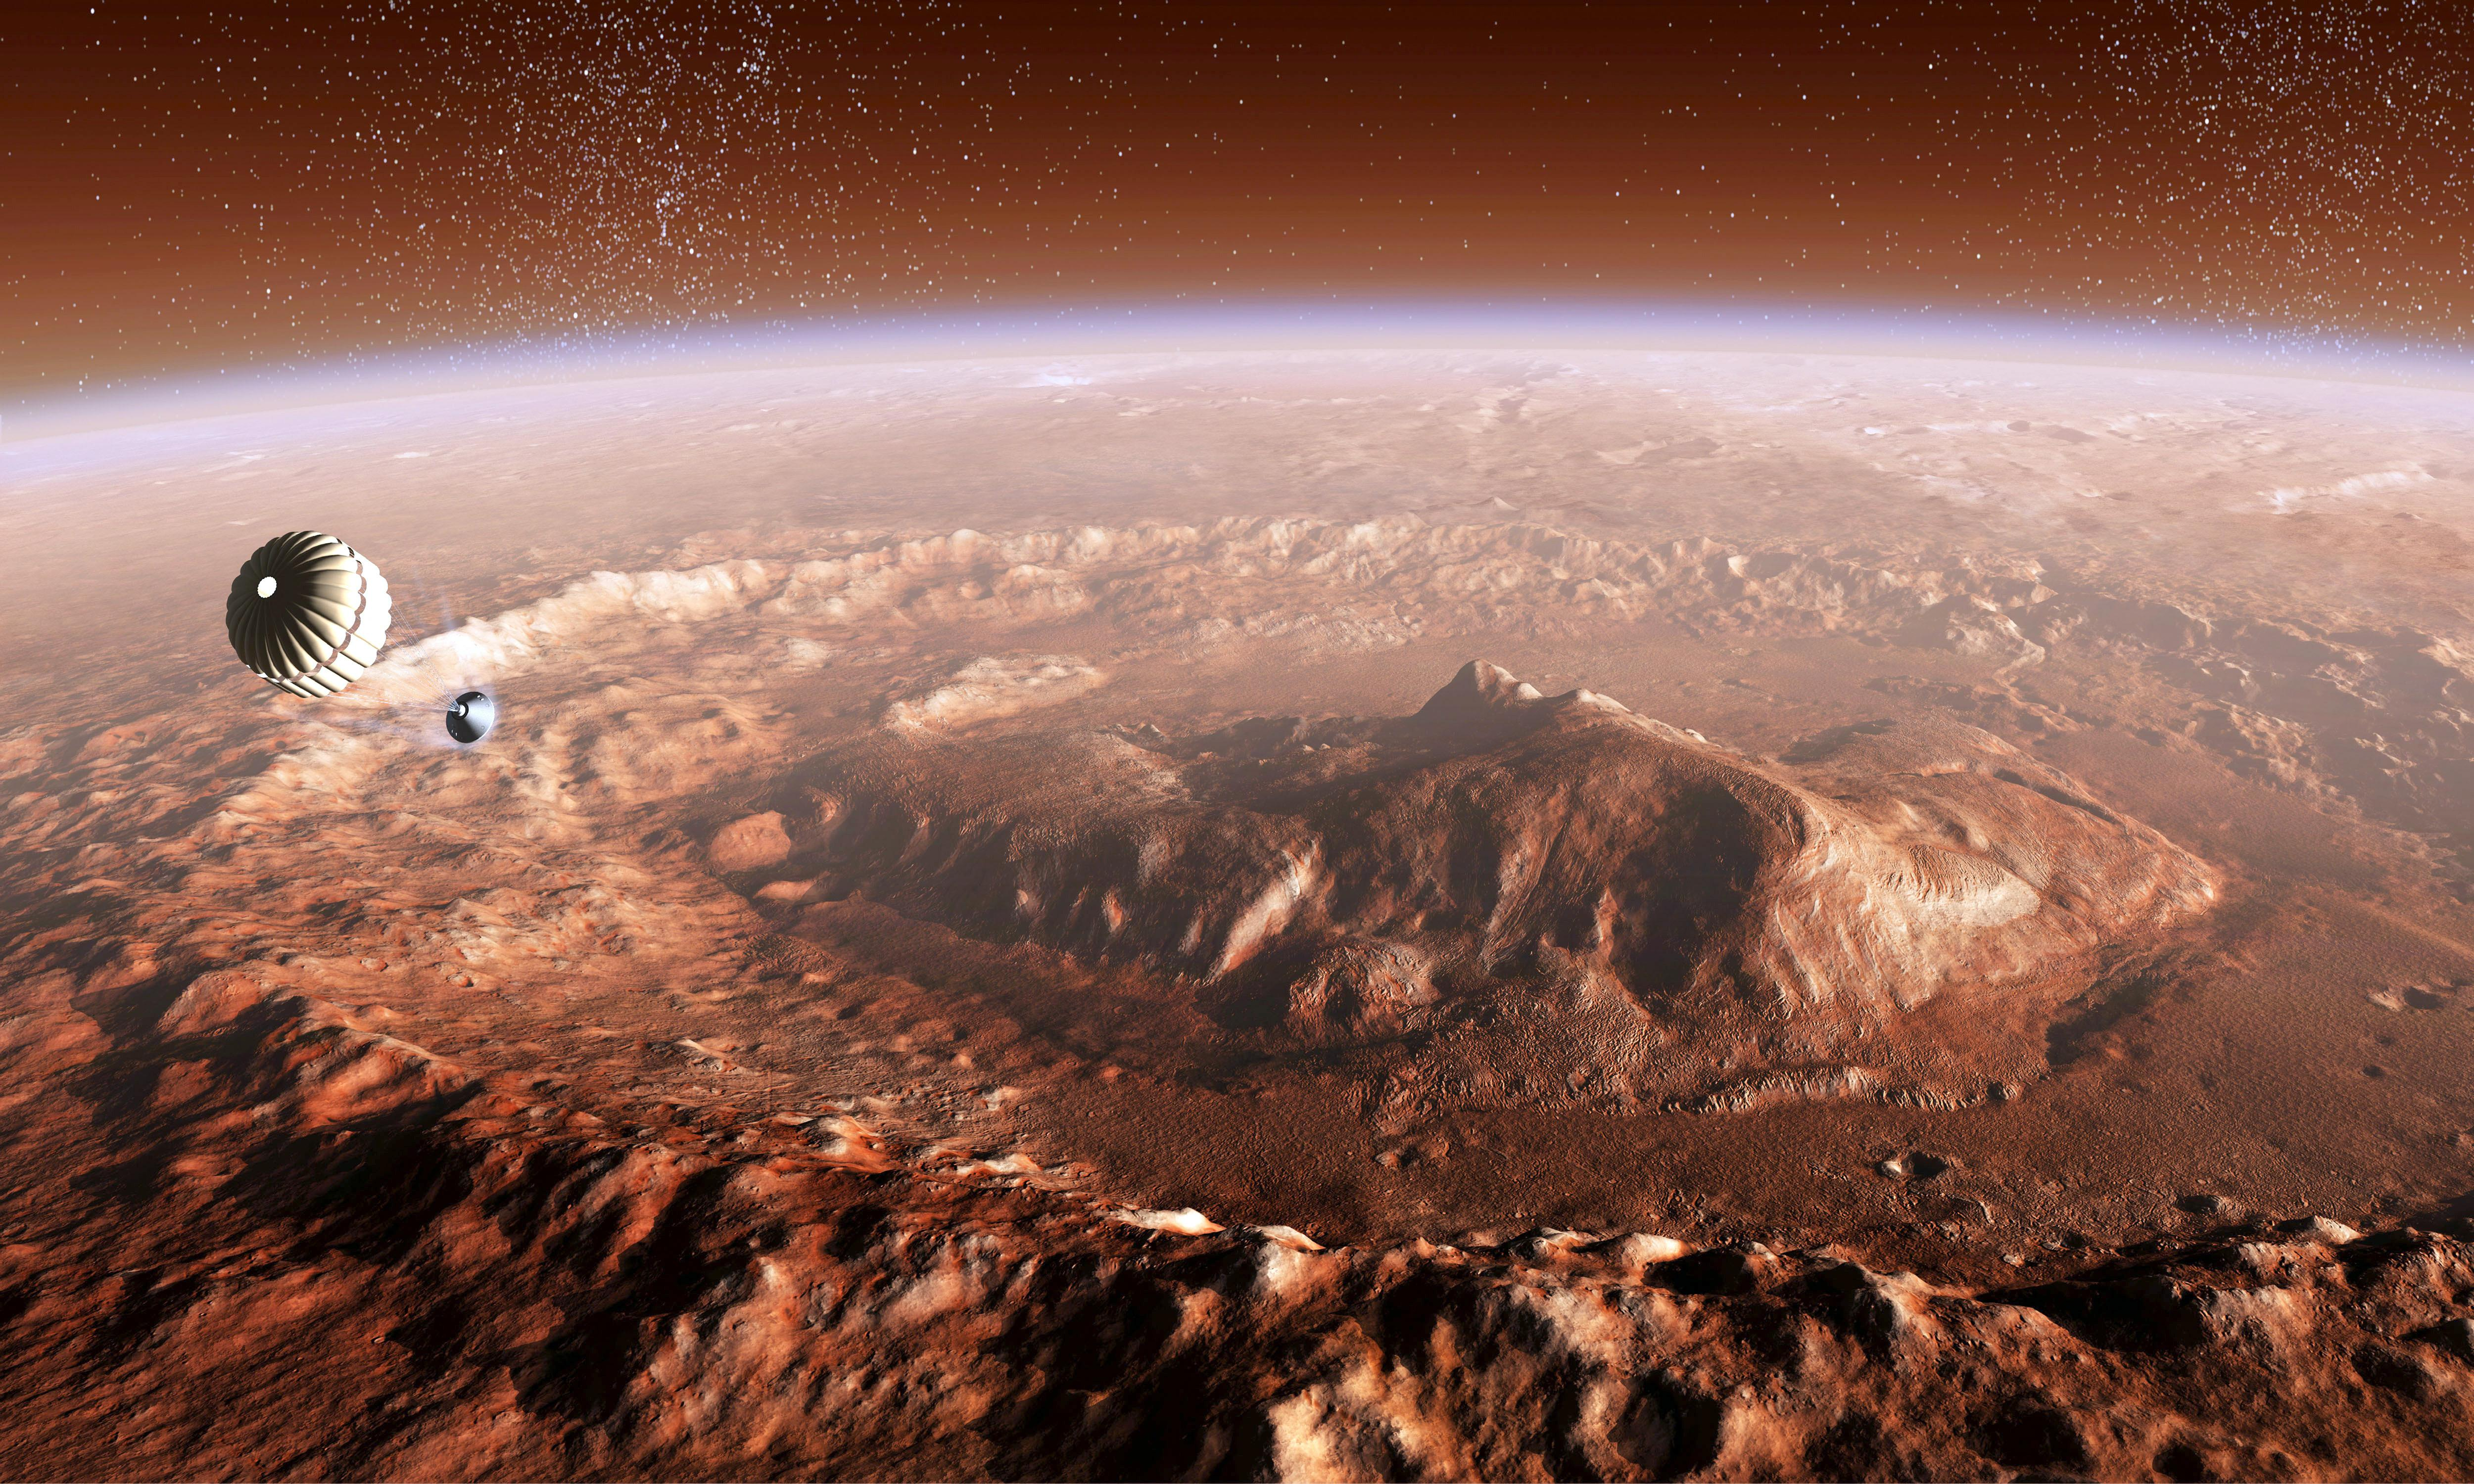 Jokers please: first human Mars mission may need onboard comedians